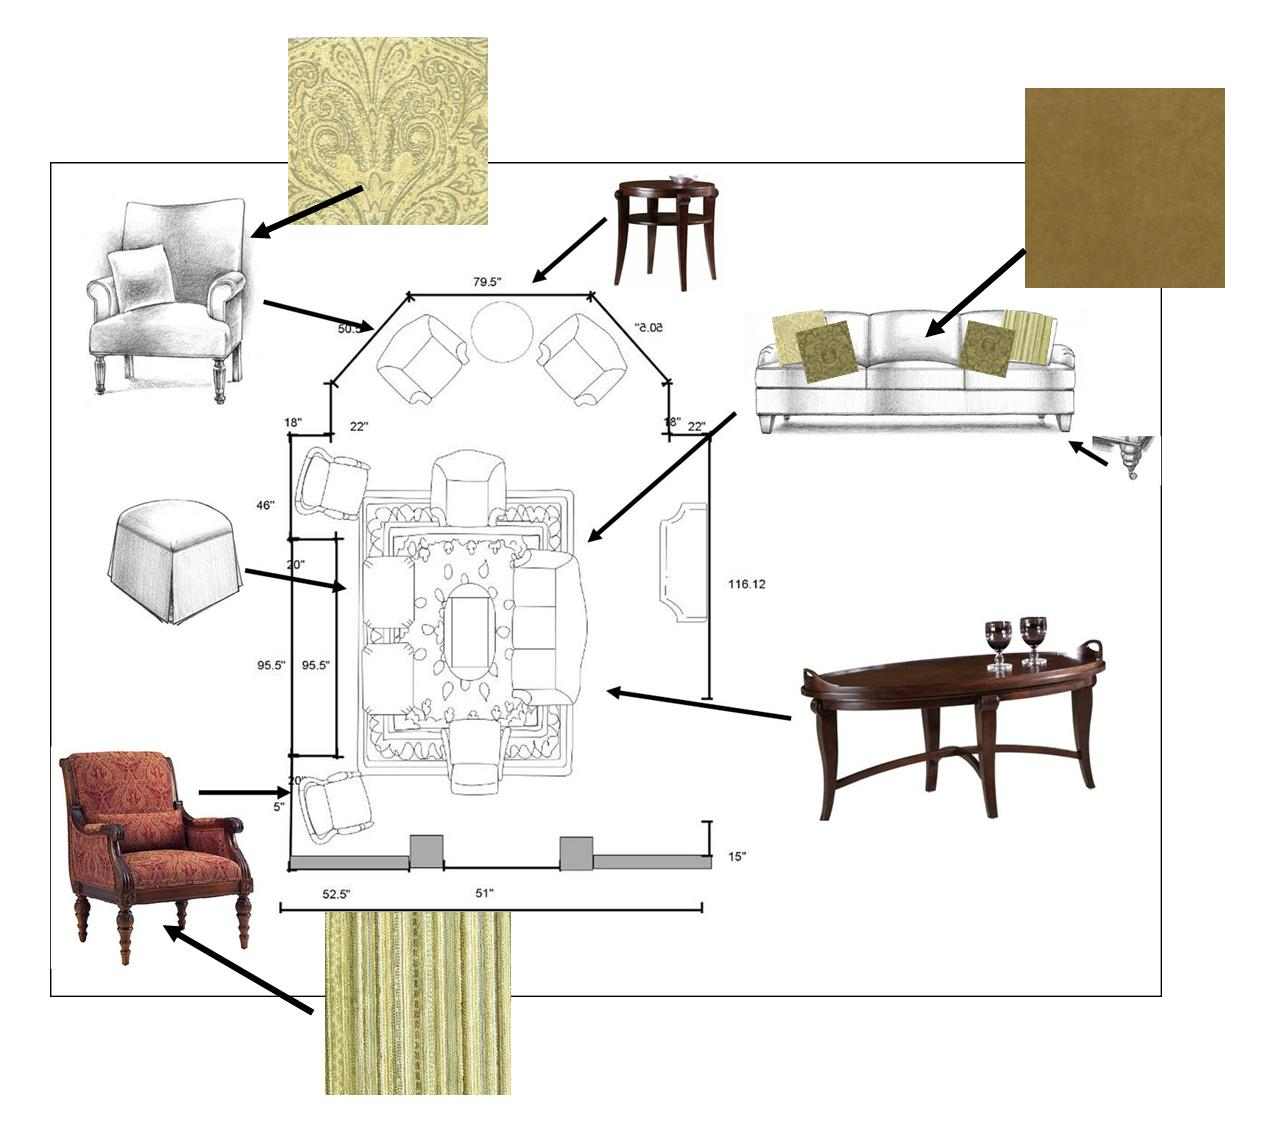 Woodwork chinese furniture plans pdf plans for Make room planner